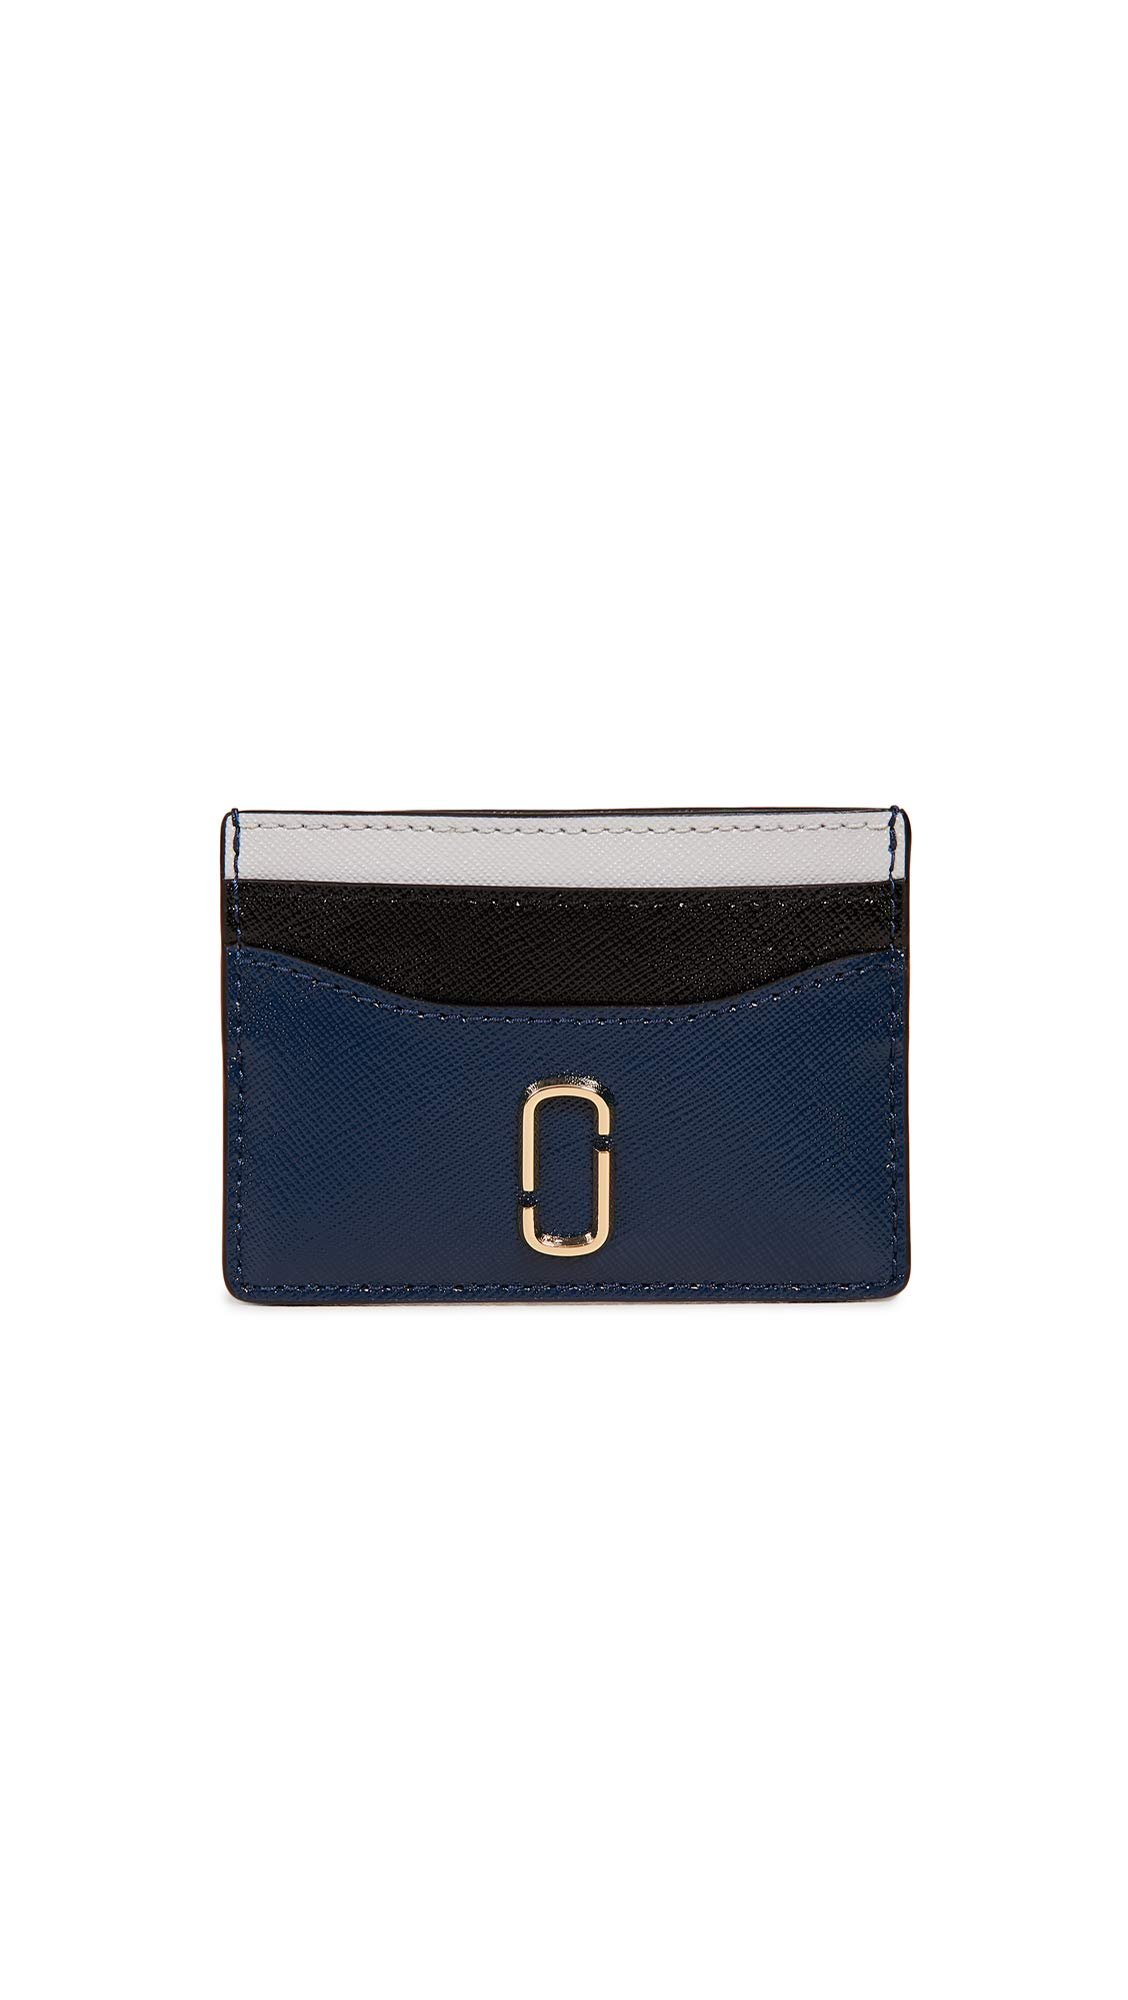 Marc Jacobs Women's Snapshot Card Case, Blue Sea Multi, One Size by Marc Jacobs (Image #1)